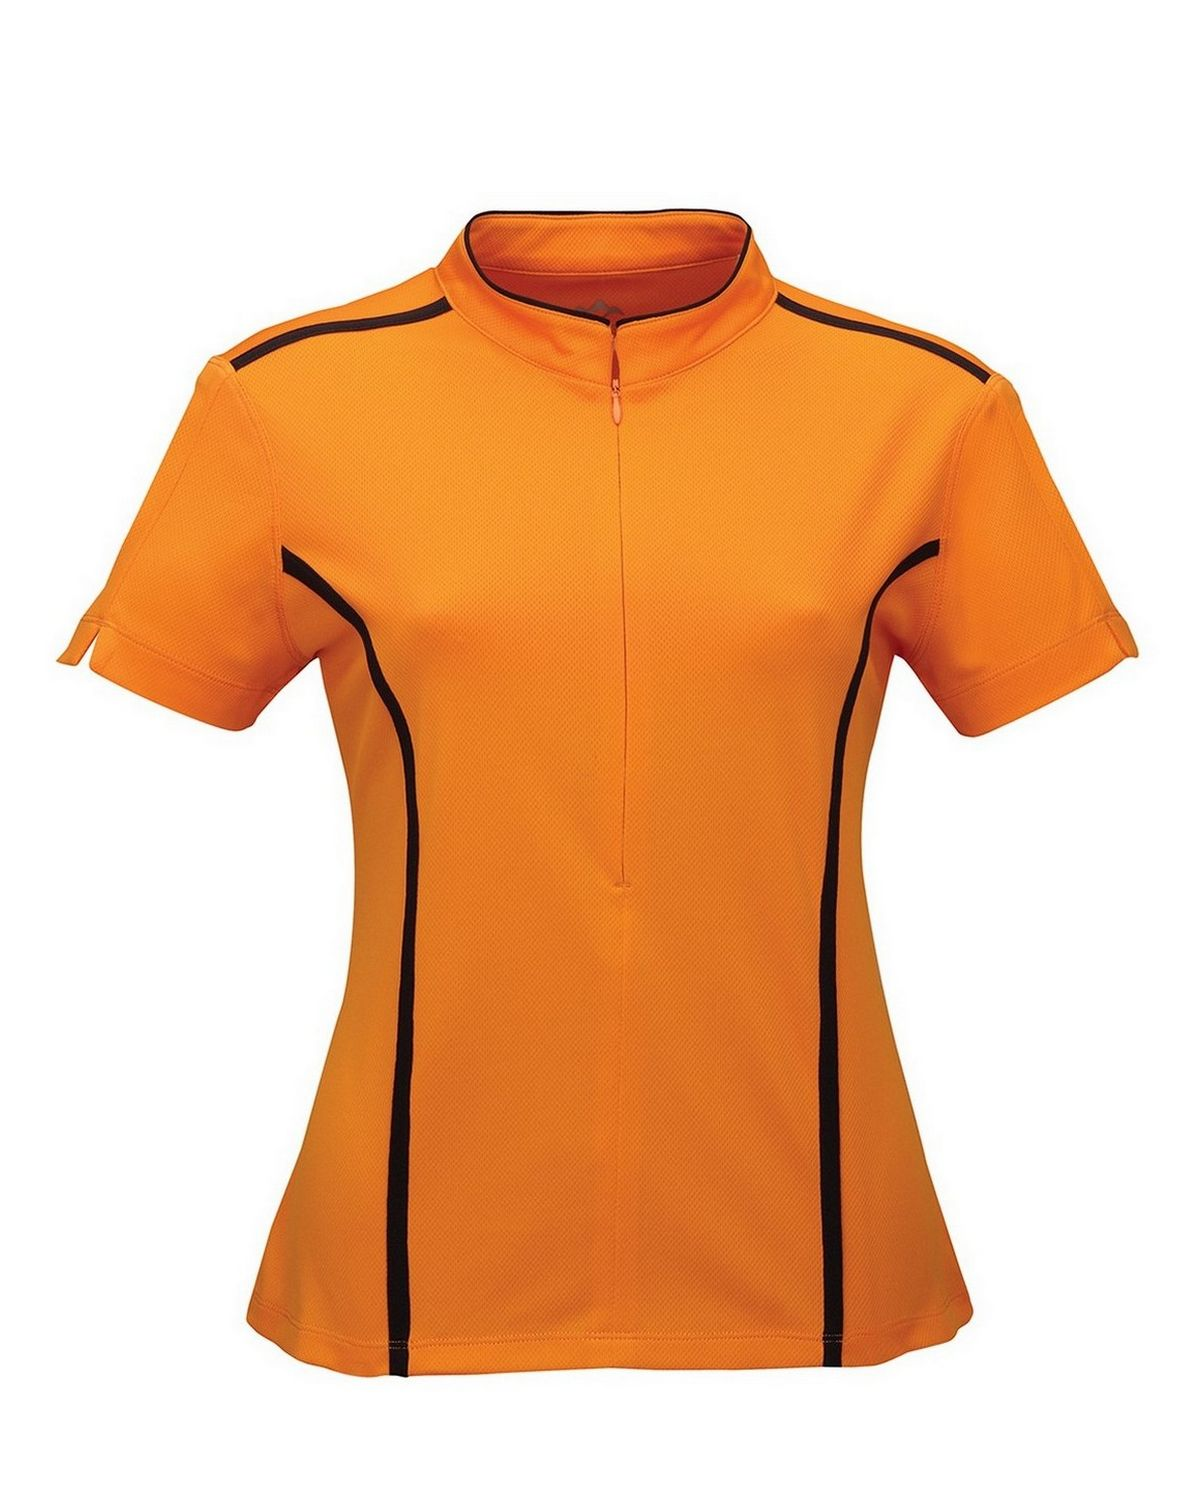 Tri-Mountain Performance 046 Lady Peloton - Bright Orange/Black - XL 046